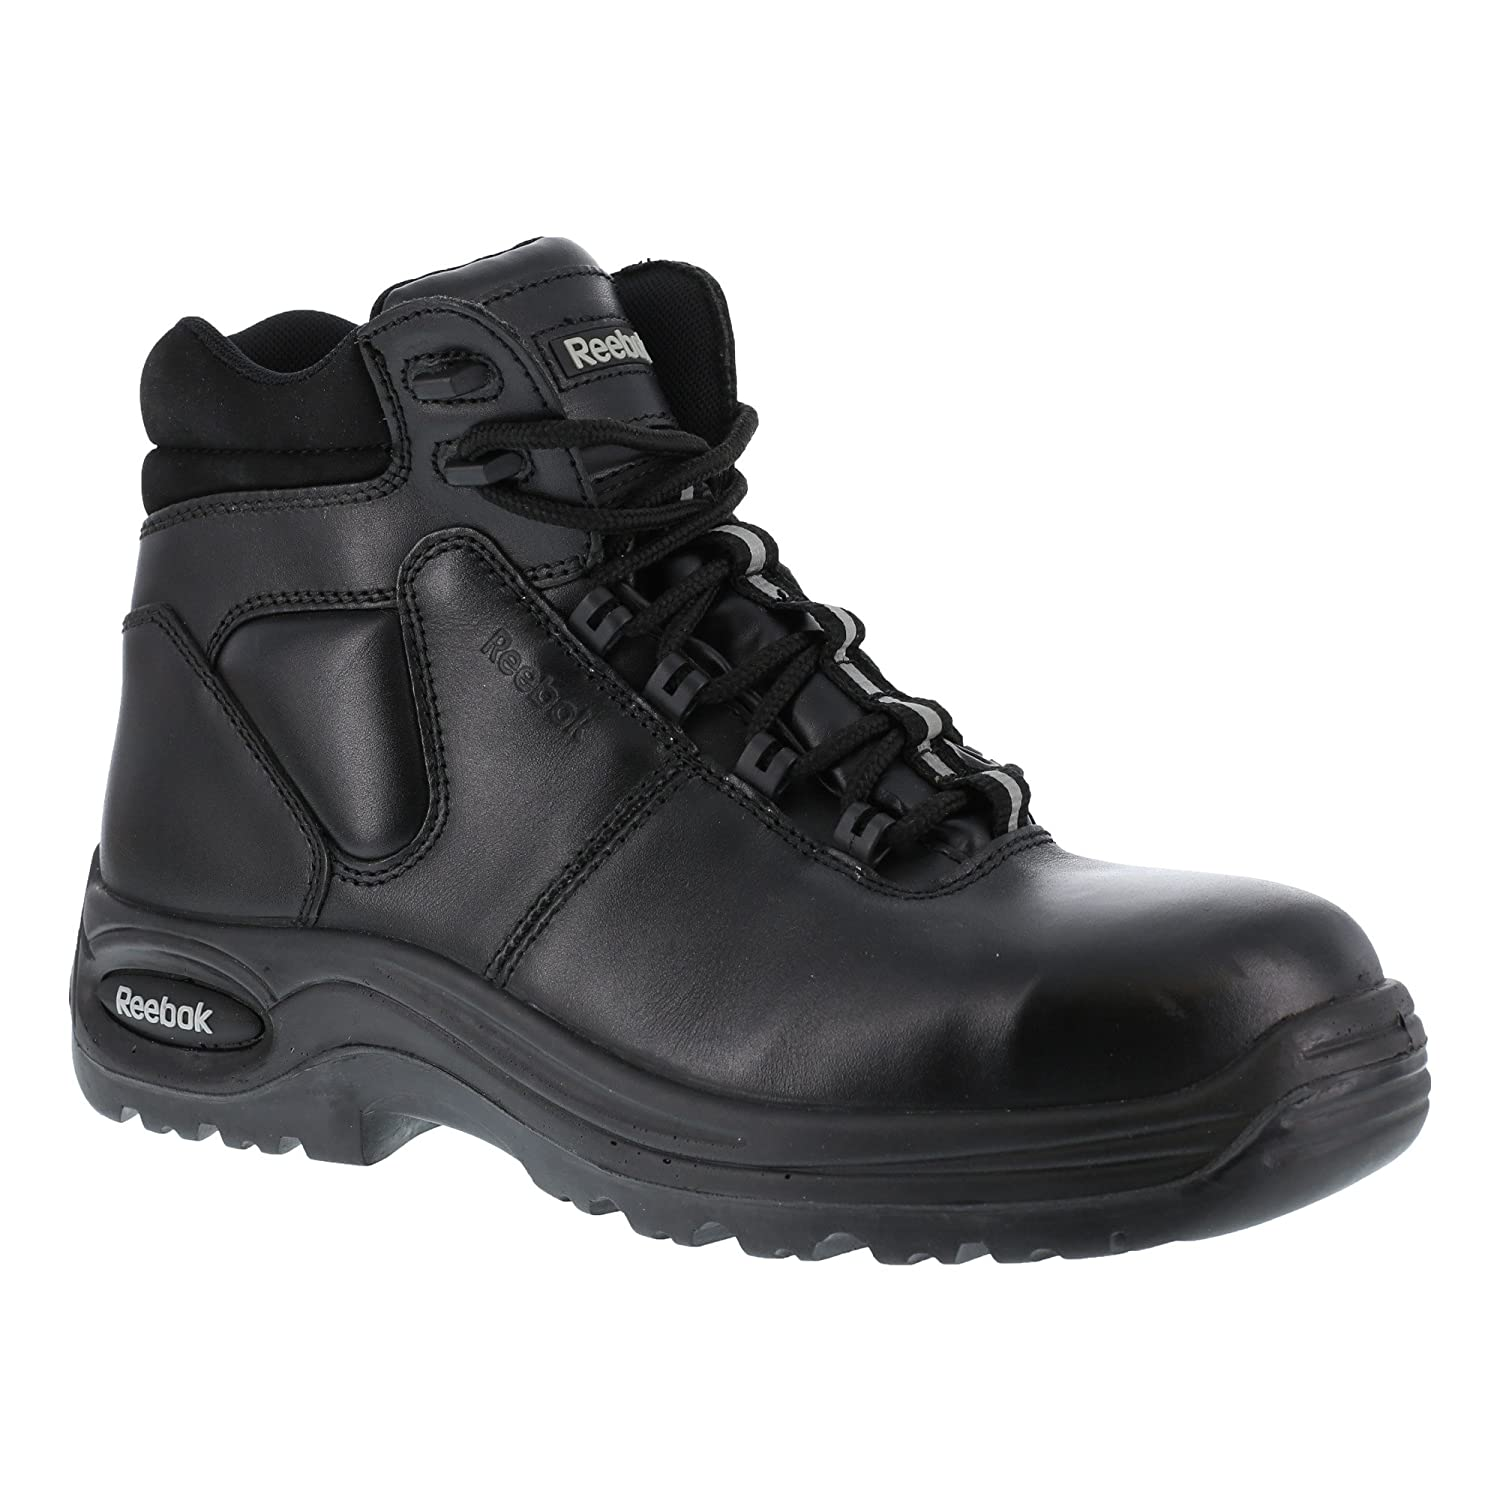 2d37c9a0c9184 Amazon.com: Reebok Mens Black Leather 6in Athletic Sport Boots ...